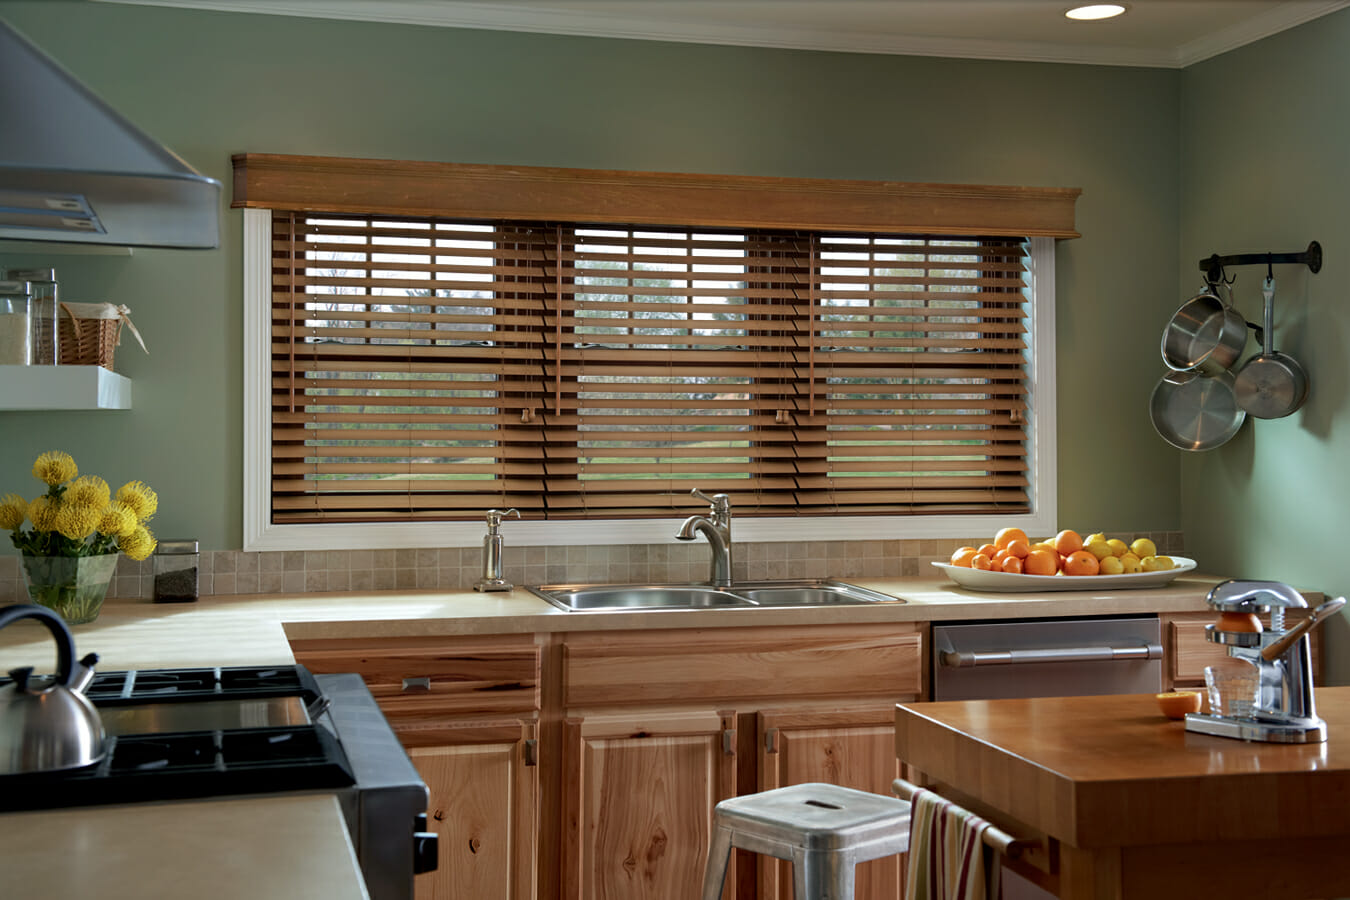 Kitchen Window Treatment Ideas  3 Blind Mice Window Coverings. Vera Bradley Kitchen Rug. Kitchen Tea Coffee Sugar Canisters. John Doe Kitchen Old St. Kitchen Appliances Hs Code. Paint Kitchen Laminate Countertops. Small Kitchen How To Make It Look Bigger. Kitchen Dark Cabinets Light Island. Declutter Your Kitchen Cupboards